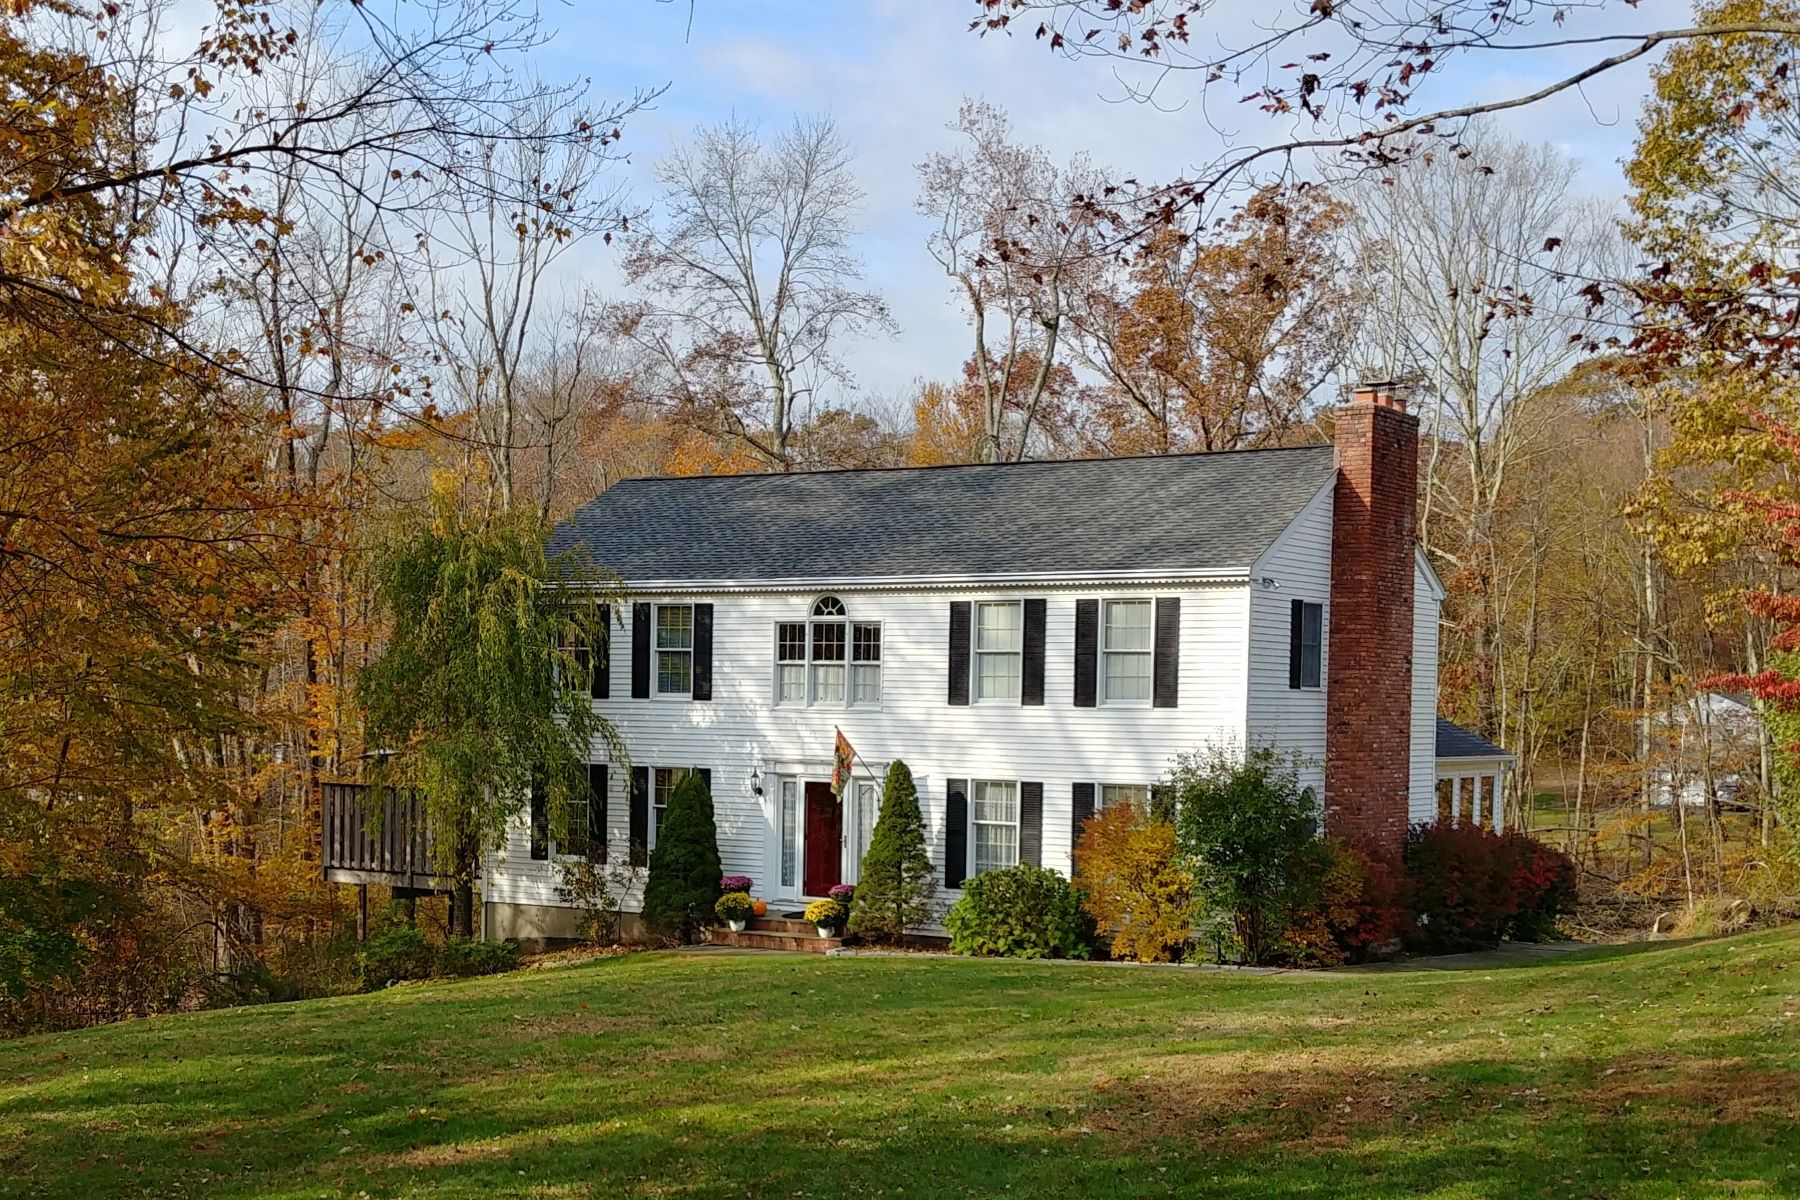 Single Family Home for Sale at Style, Condition snd Location Meet Here 33 Columbia Drive New Fairfield, Connecticut 06812 United States